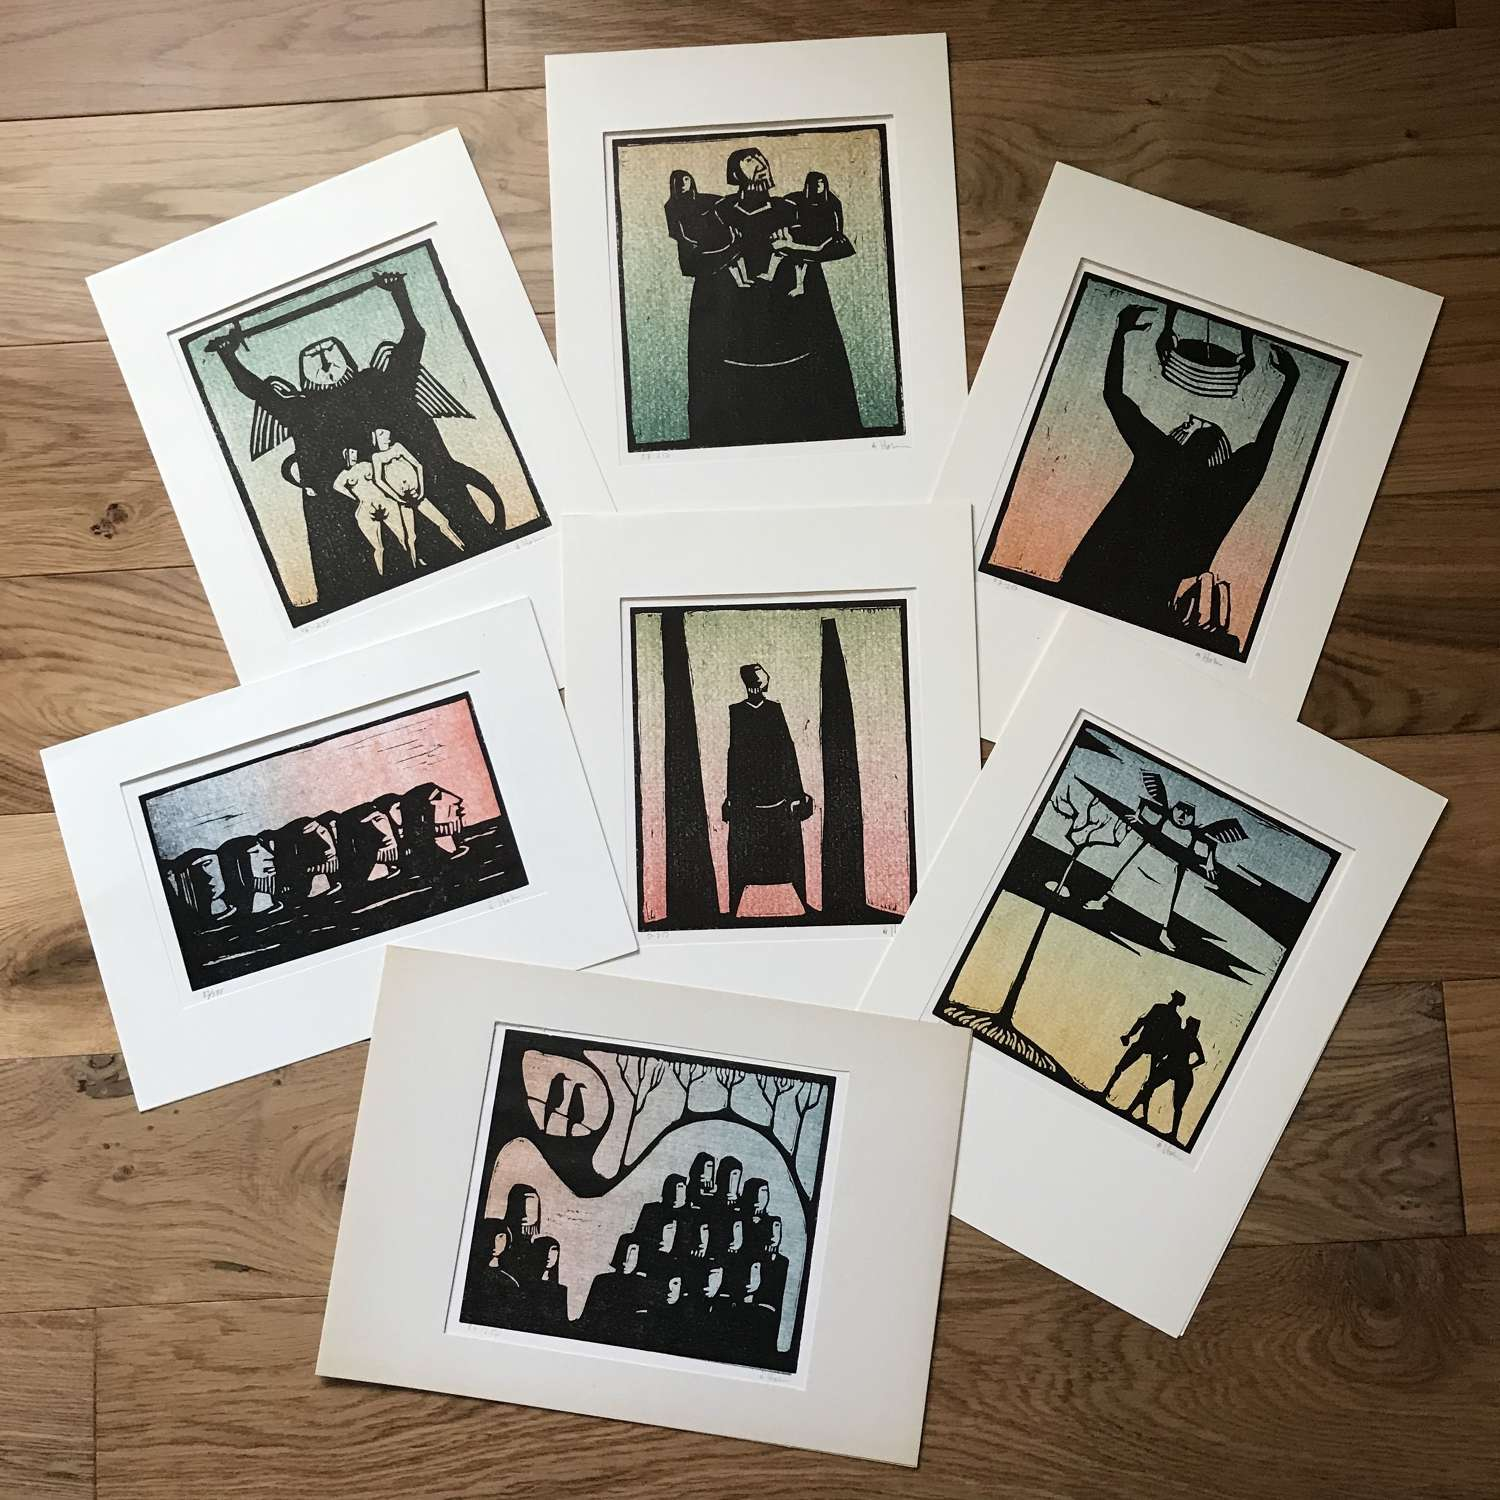 Åke Holm Limited Edition Linocut Prints Sweden 1960s-70s